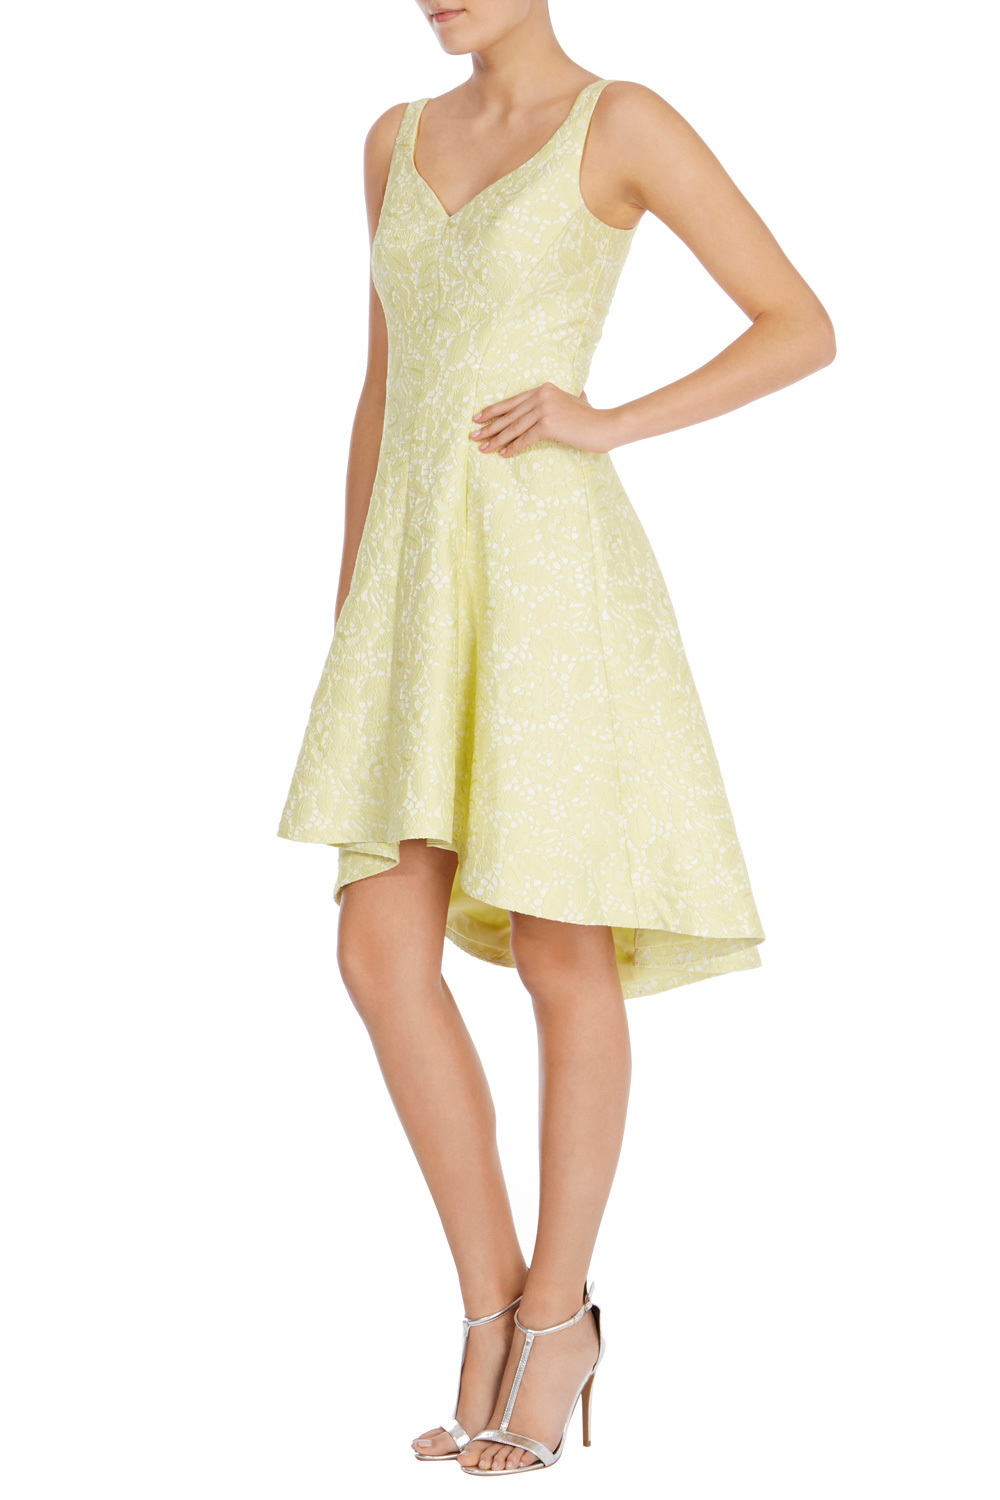 Suzanna Jacquard Dress - neckline: v-neck; pattern: plain; sleeve style: sleeveless; style: prom dress; secondary colour: white; predominant colour: primrose yellow; occasions: evening; length: just above the knee; fit: fitted at waist & bust; fibres: polyester/polyamide - 100%; sleeve length: sleeveless; pattern type: fabric; pattern size: standard; texture group: brocade/jacquard; season: s/s 2016; wardrobe: event